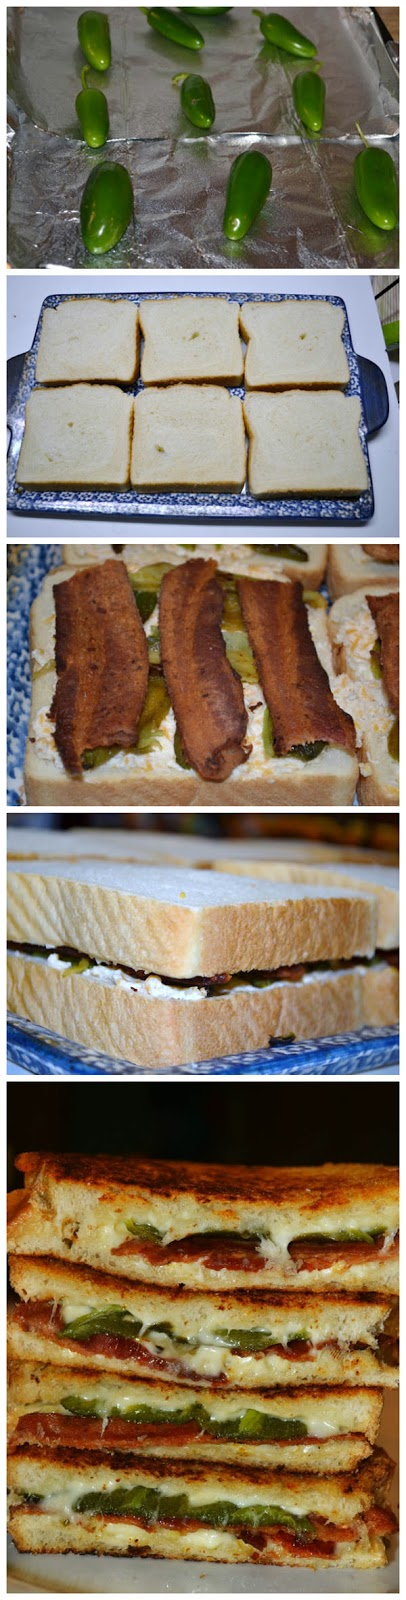 Bacon-Jalapeno-Popper-Grilled-Cheese-Sandwiches-Recipe